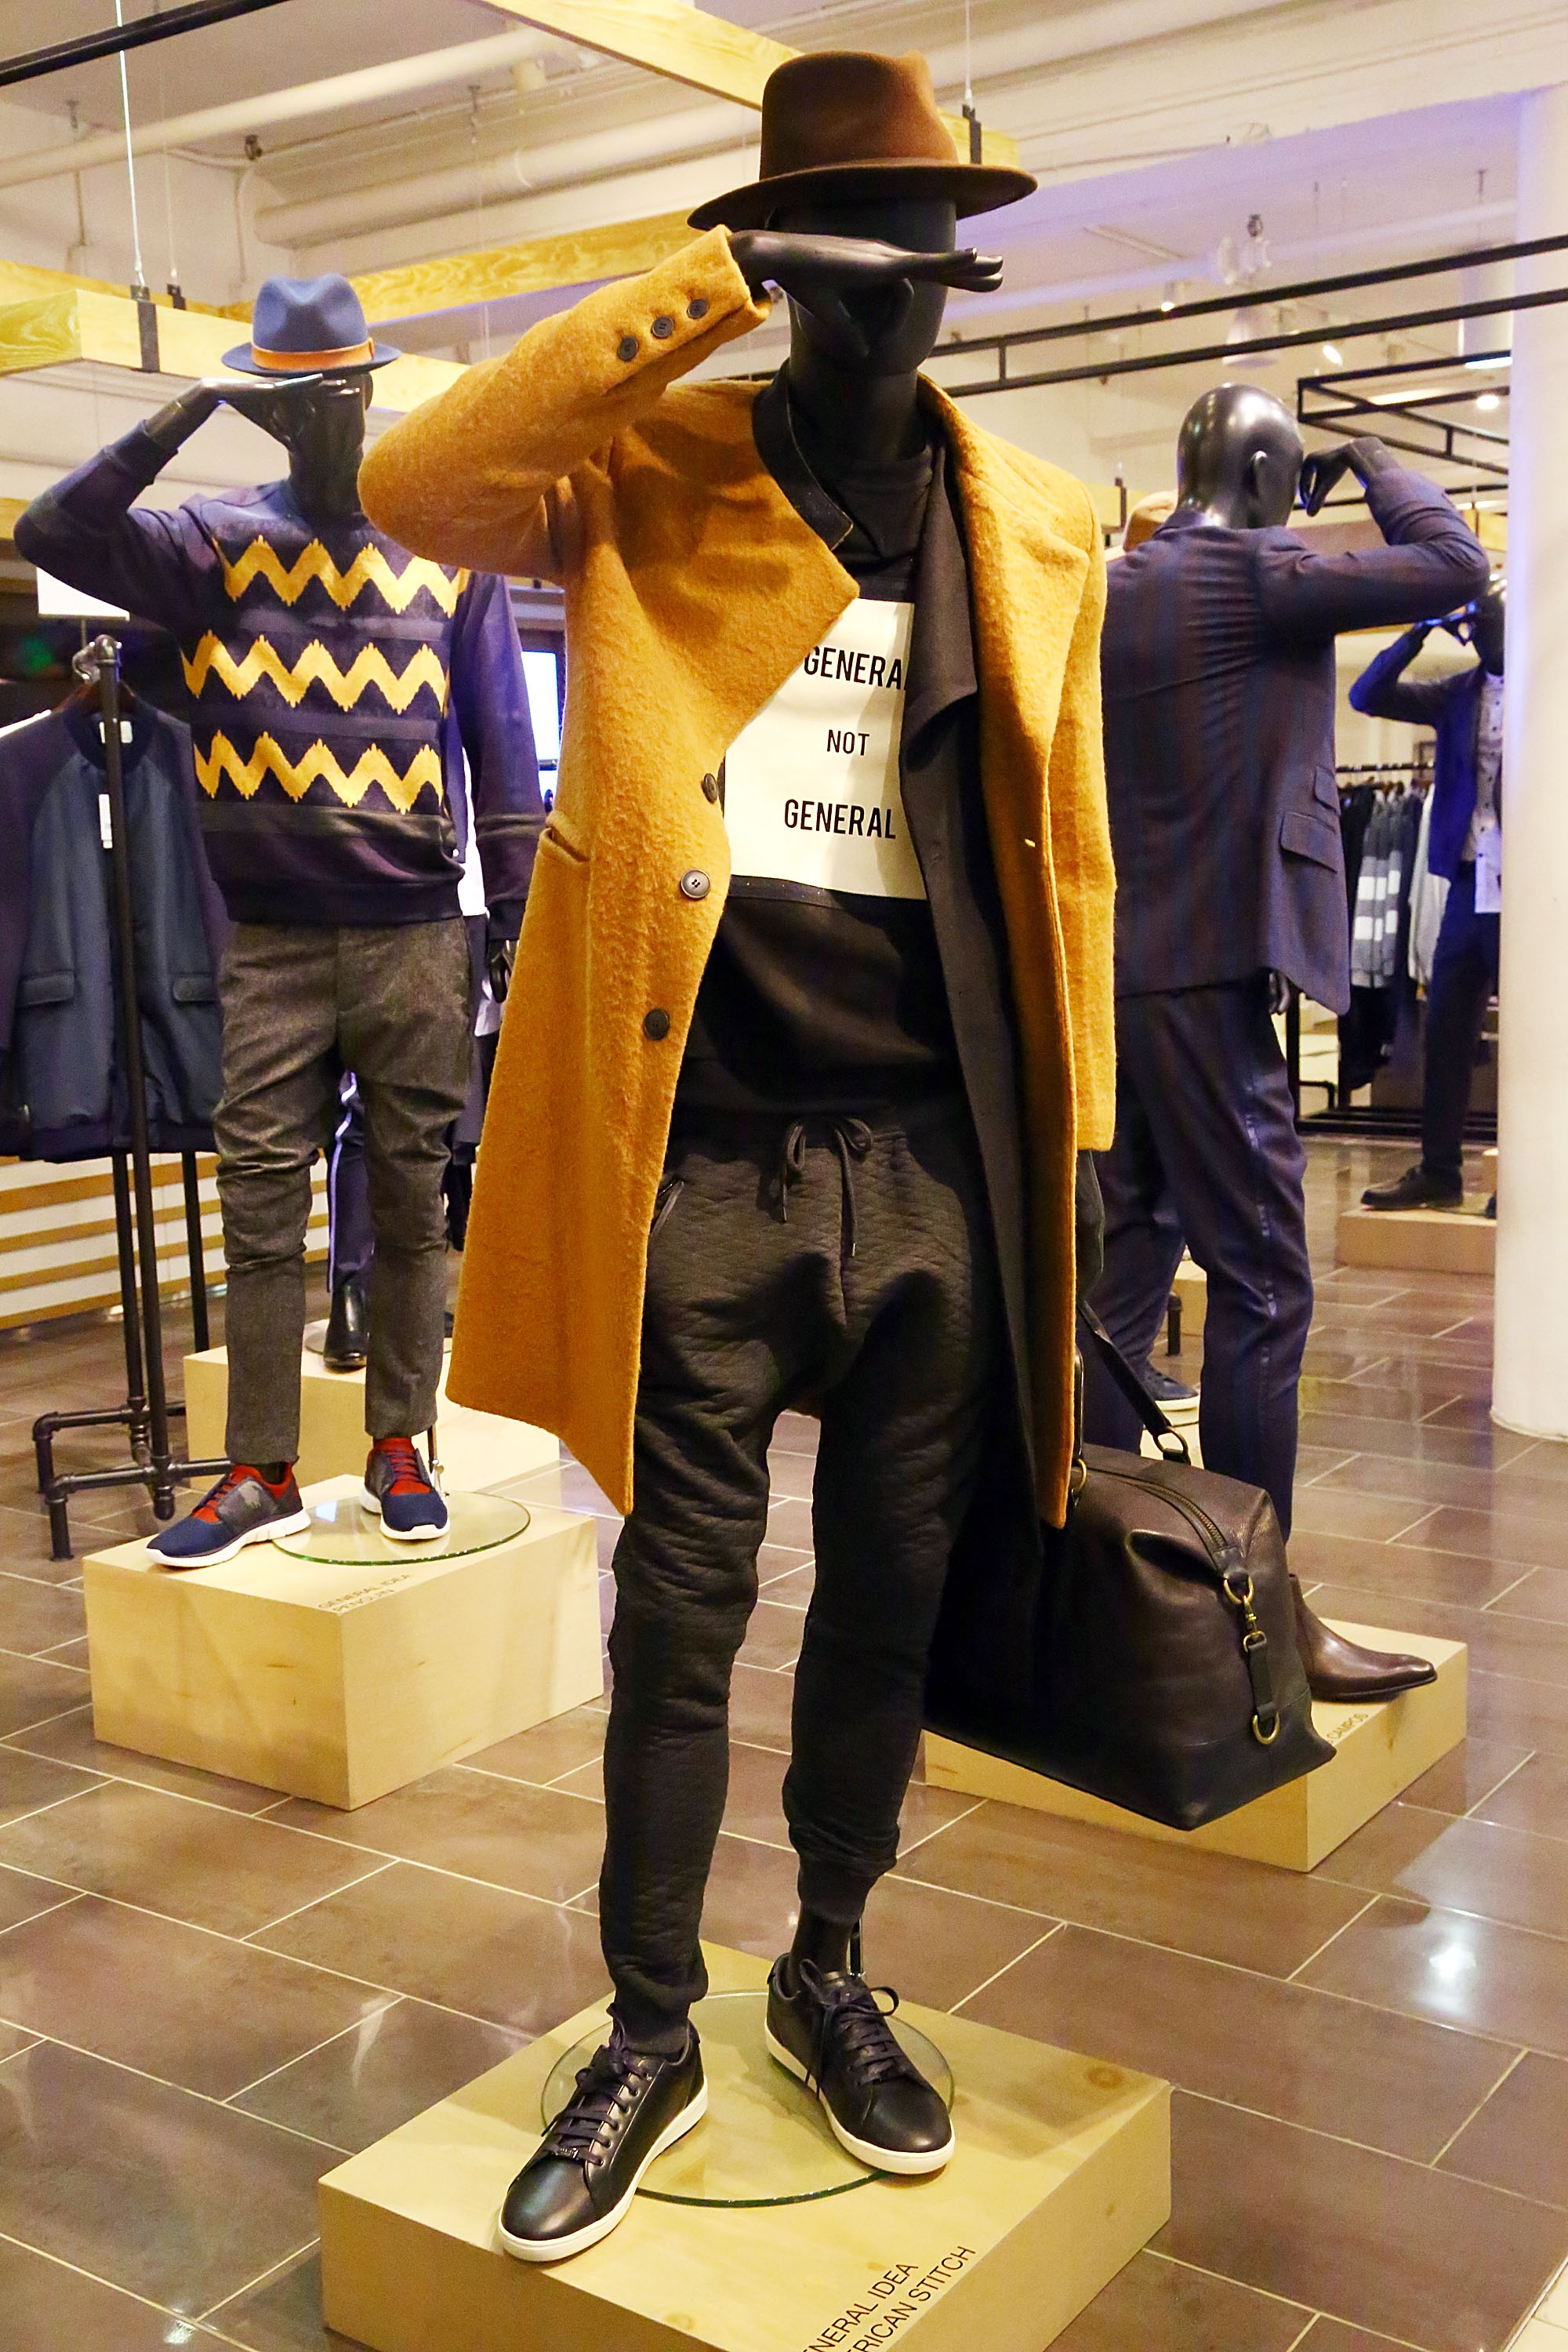 NEW YORK, NY - OCTOBER 08: Atmosphere during the GQ event at Lord & Taylor featuring Rueben Randle on October 8, 2015 in New York City. (Photo by Astrid Stawiarz/Getty Images for Lord & Taylor)